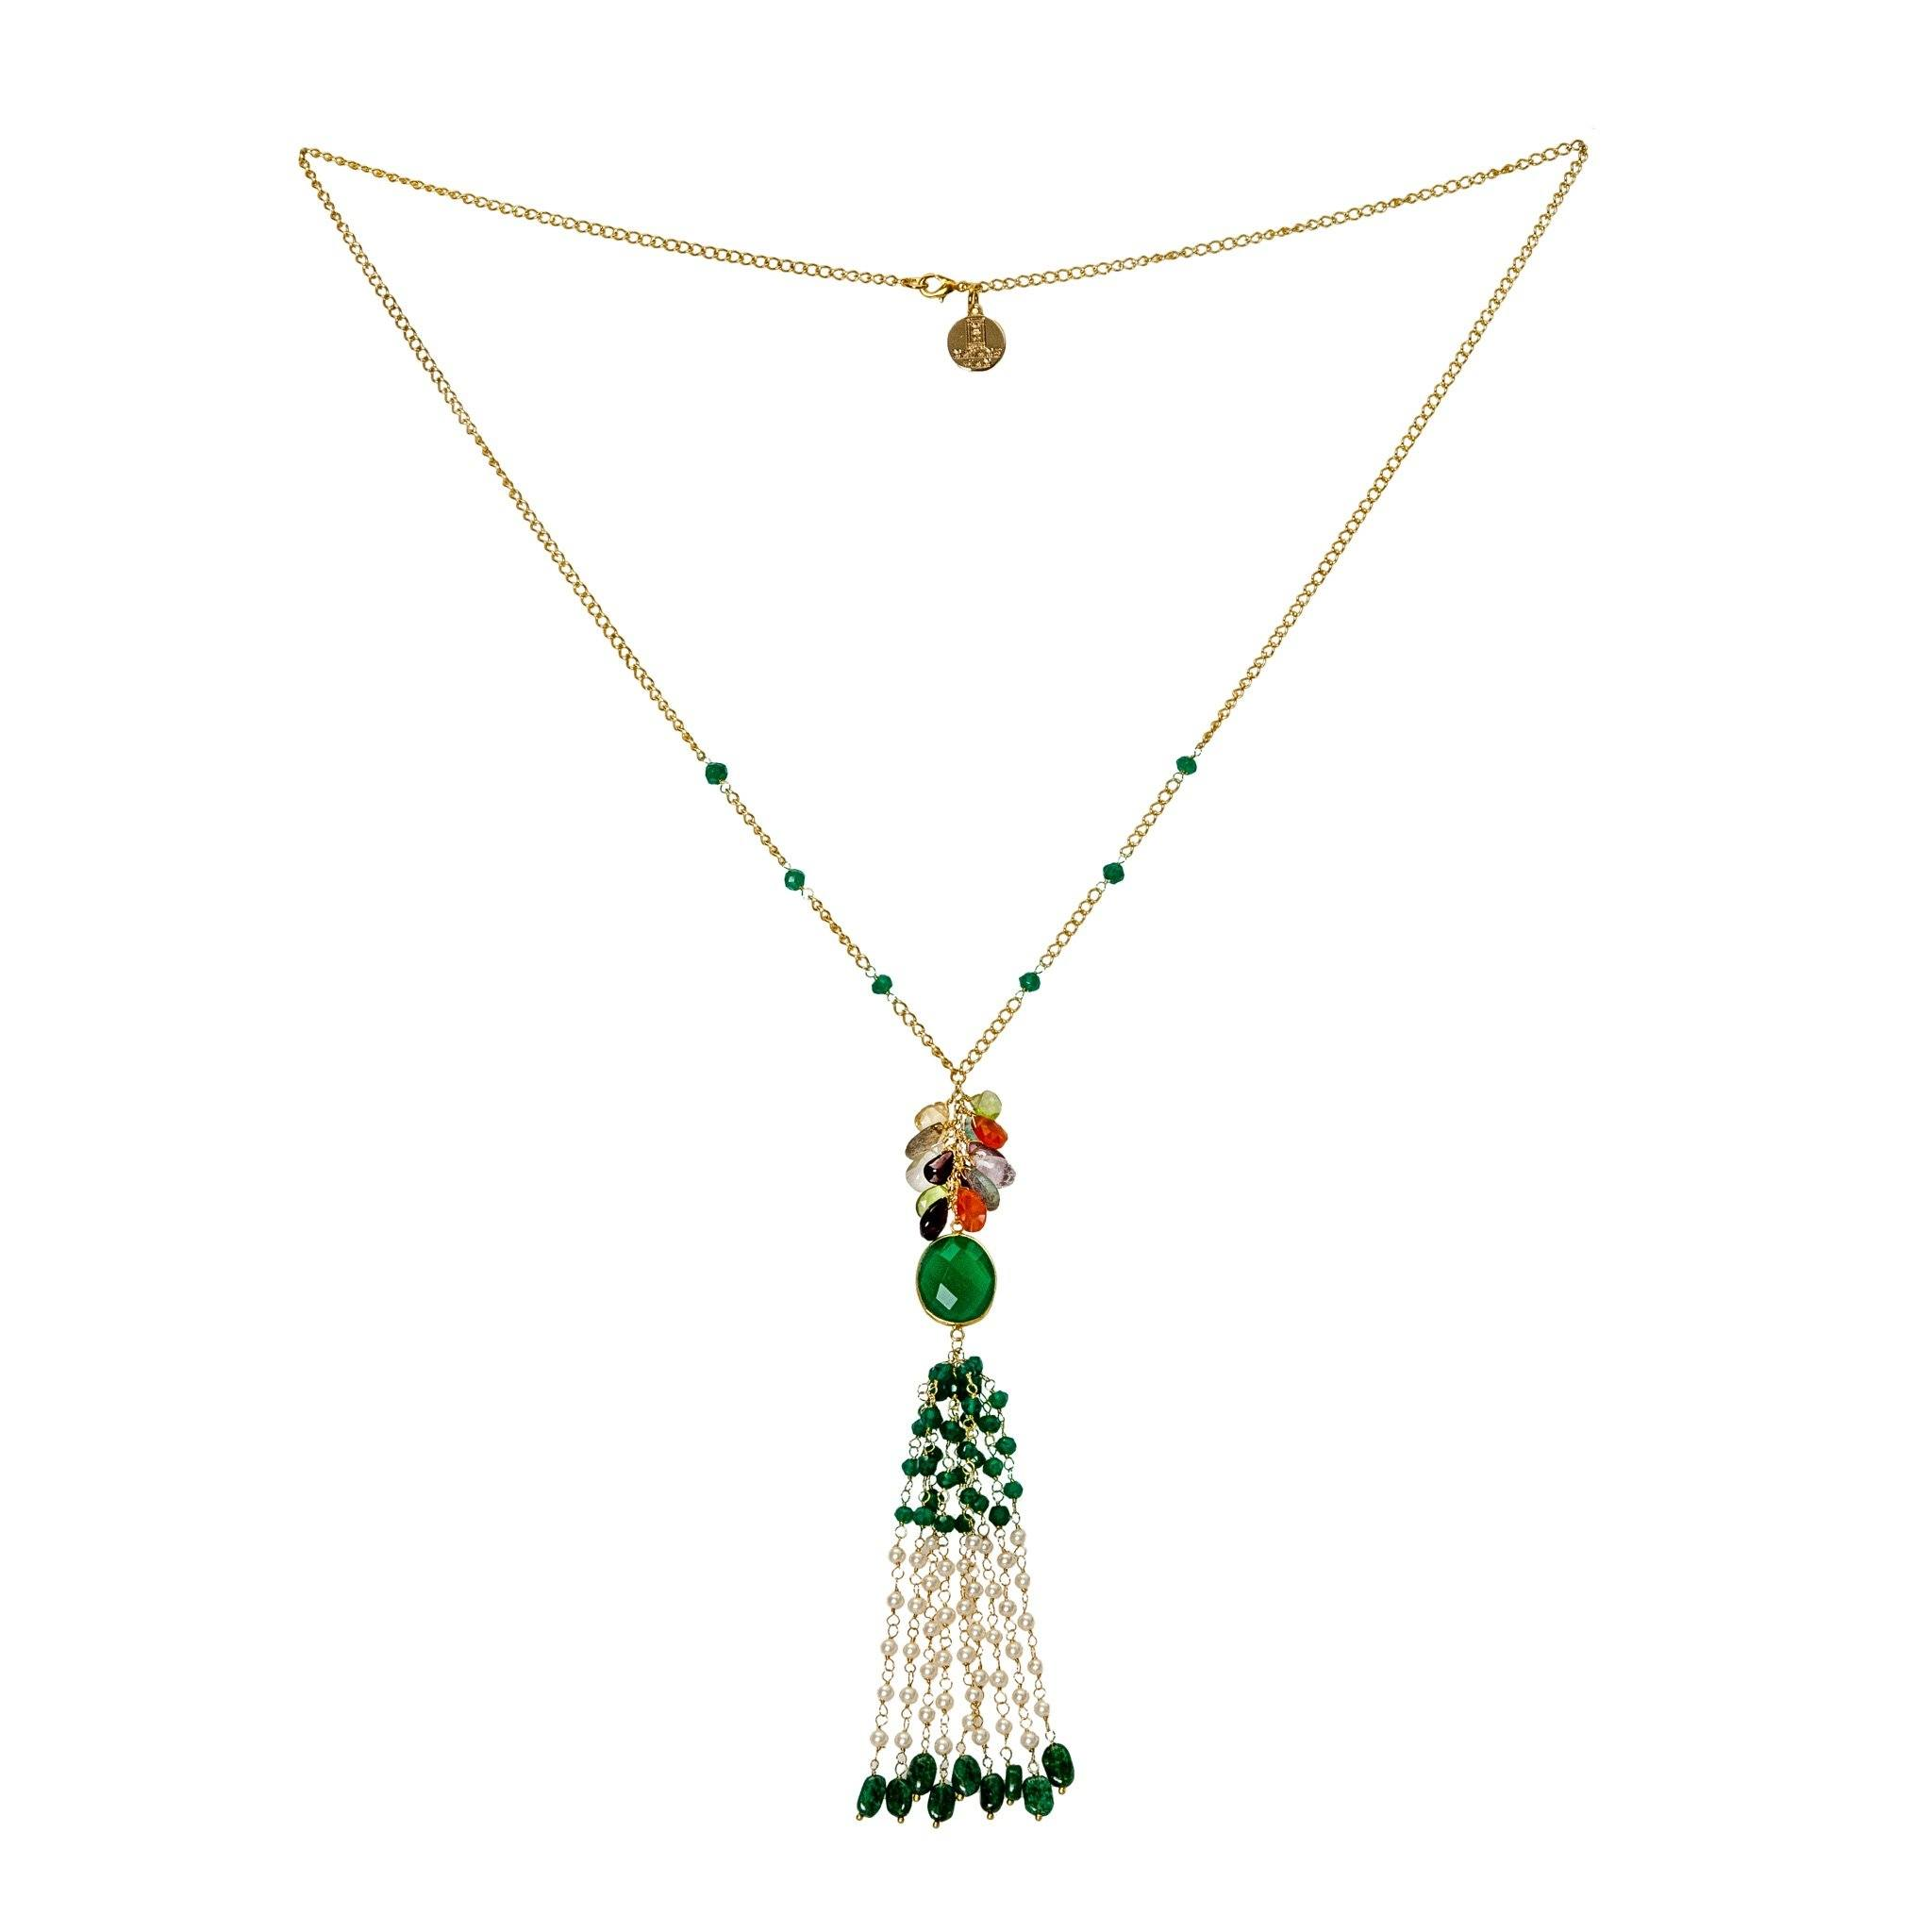 ceylon life chain necklace gold fishboy product ana cornwall green pz onyx the from collection fashion deep wanderlust